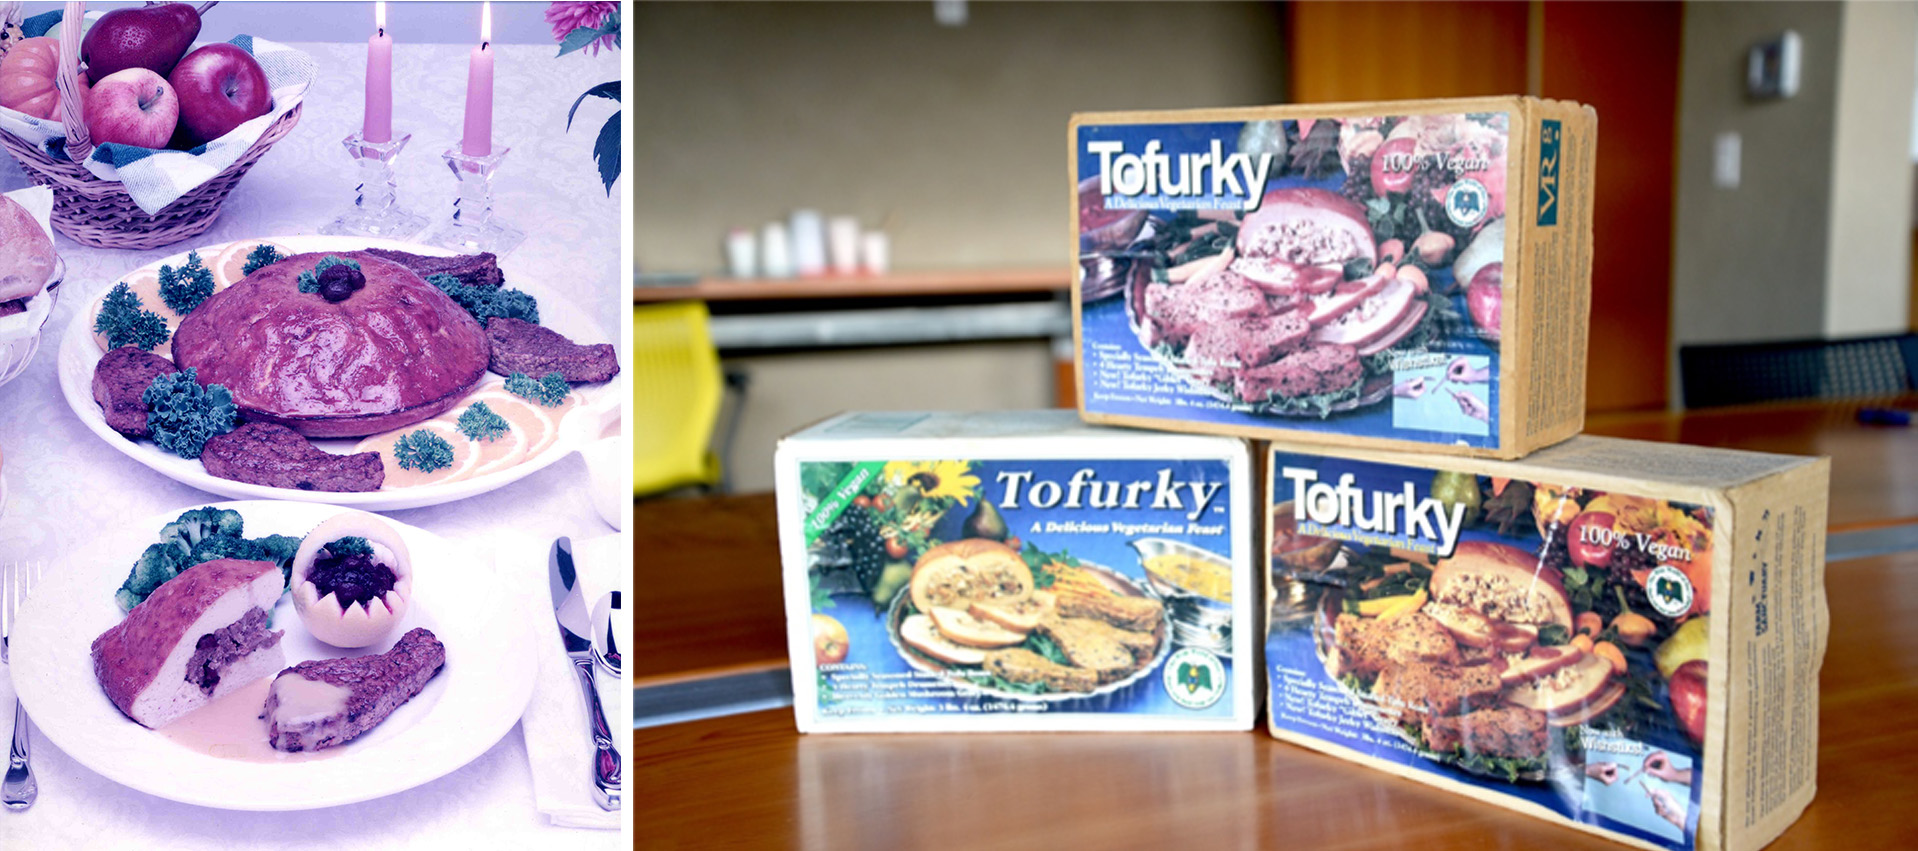 "Tofurky in the early days of plant-based meat. Notice the ""100% vegan"" labels prominently displayed in the top corner of the packaging."